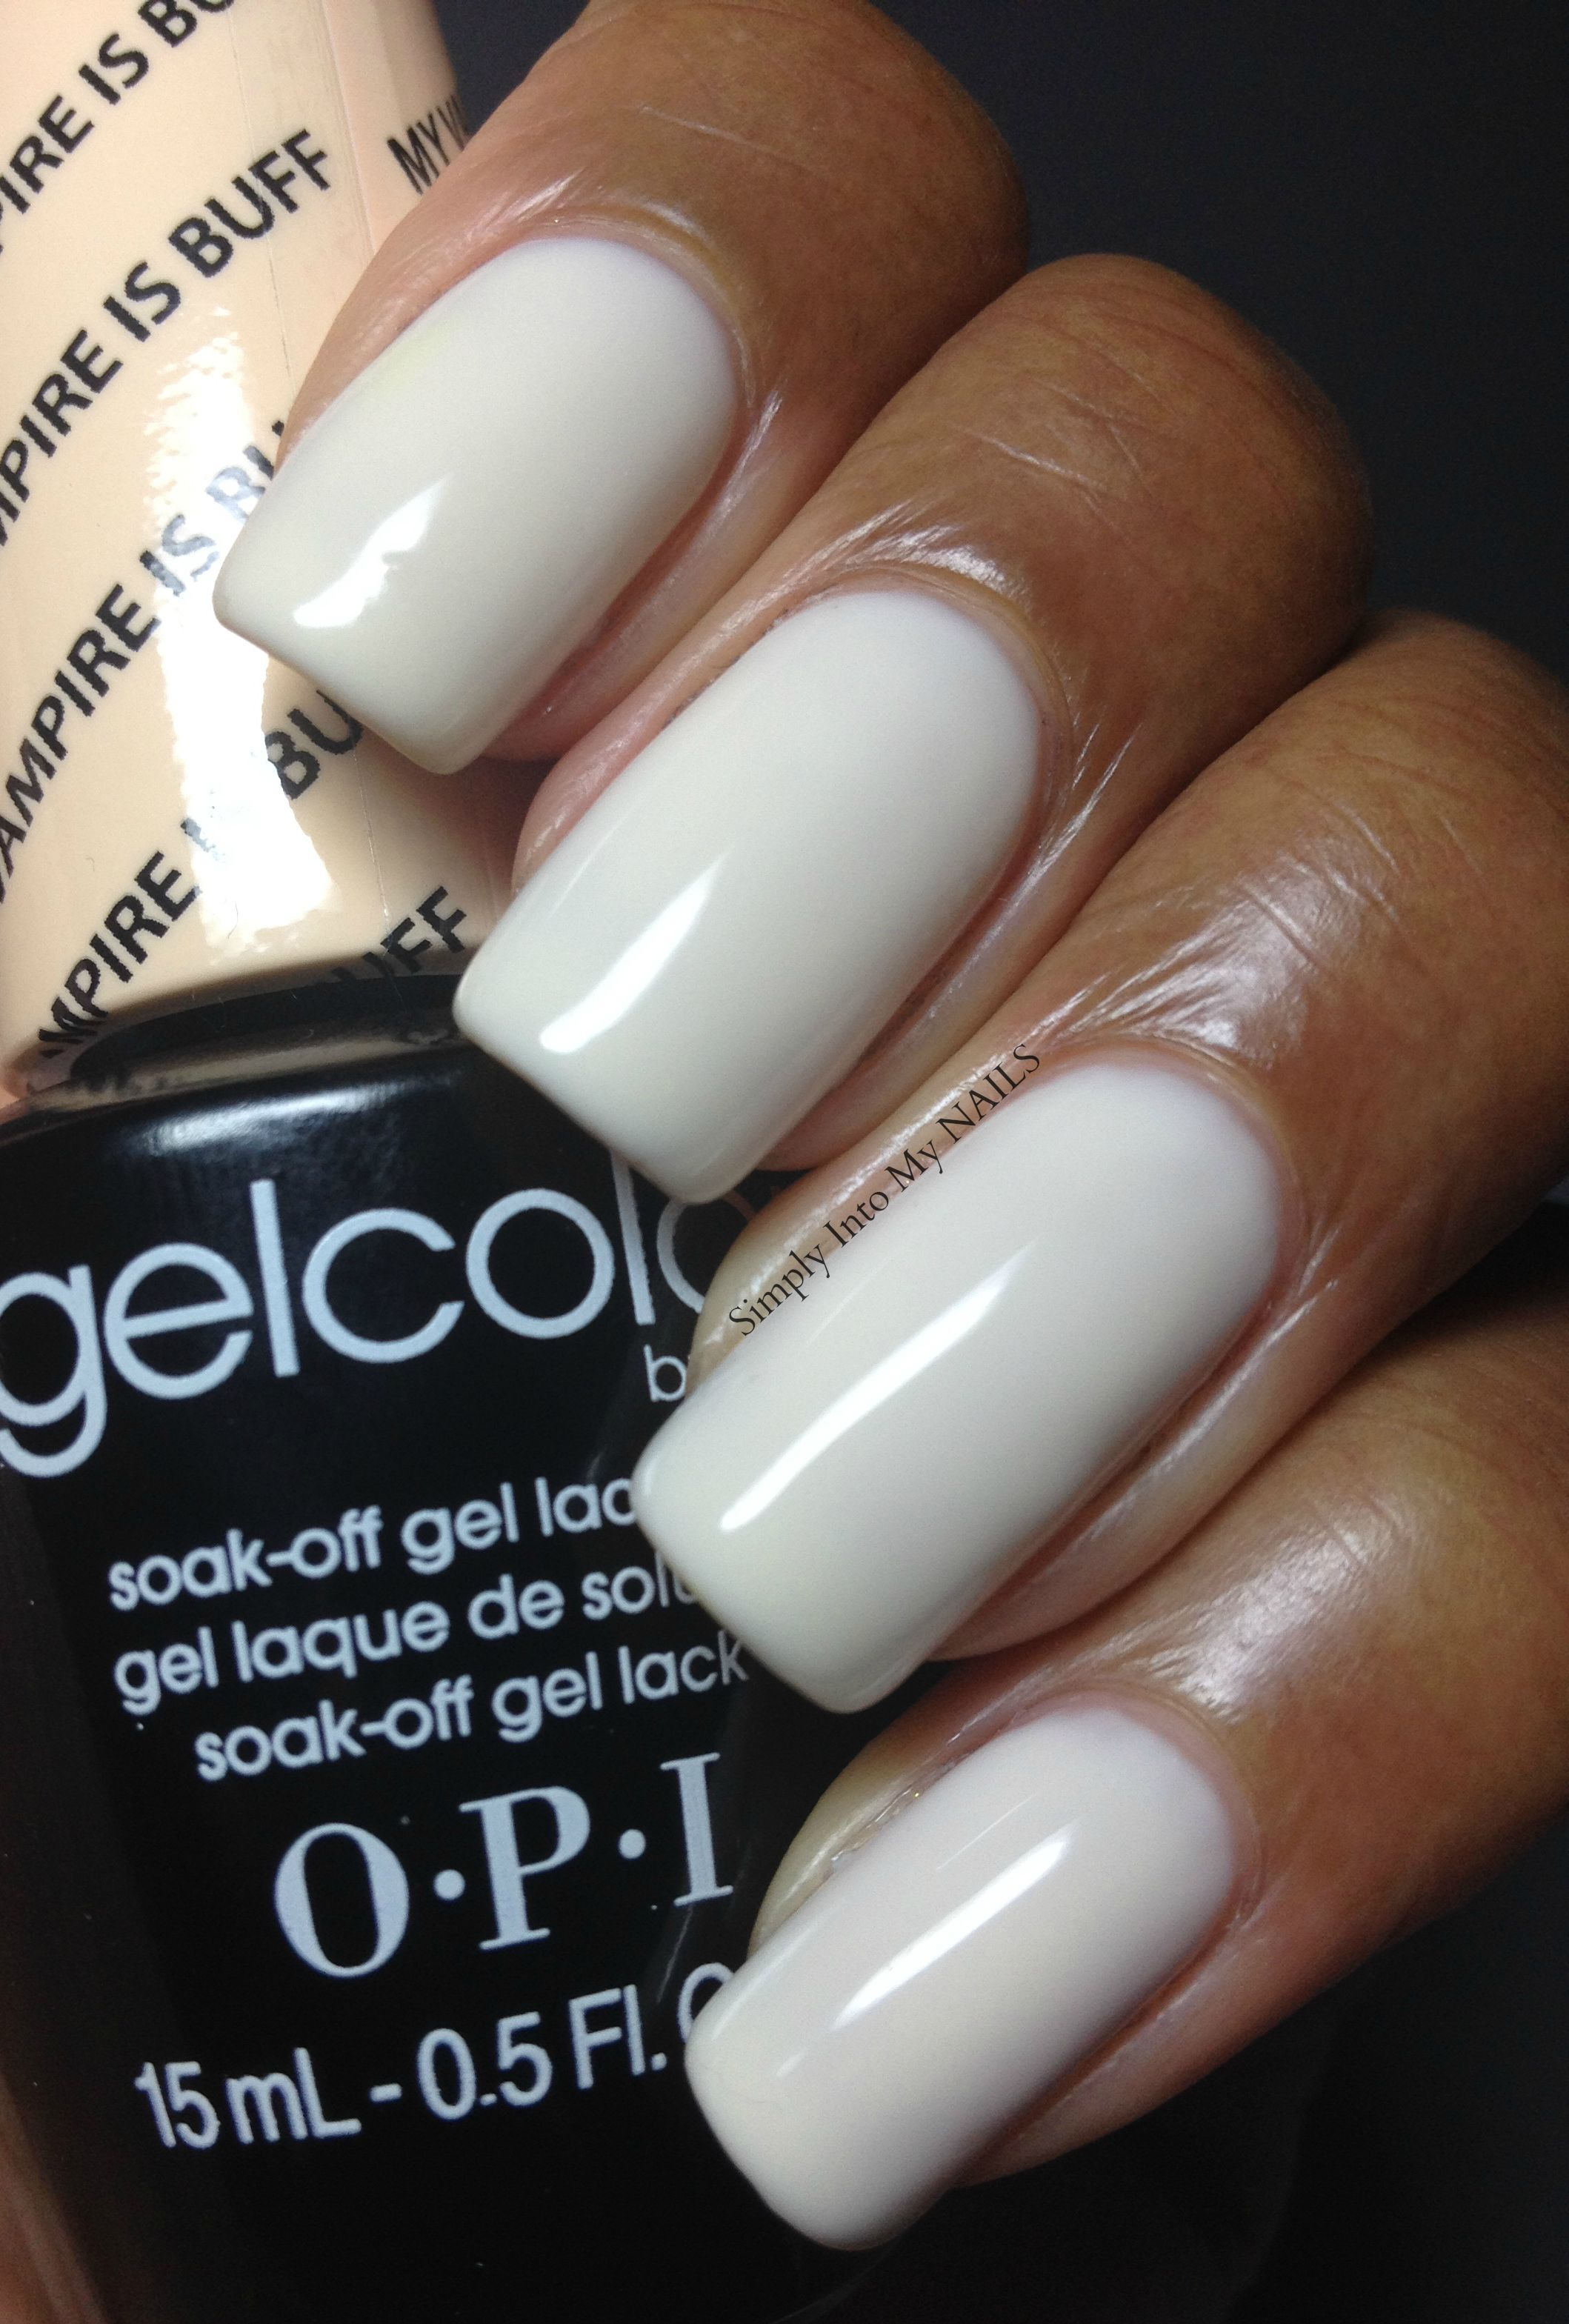 Opi Gelcolor My Vampire Is Buff If Wearing White Your Nail Tech Better Be Amazing Otherwise It Looks And Out Like These Nails Are Perfect